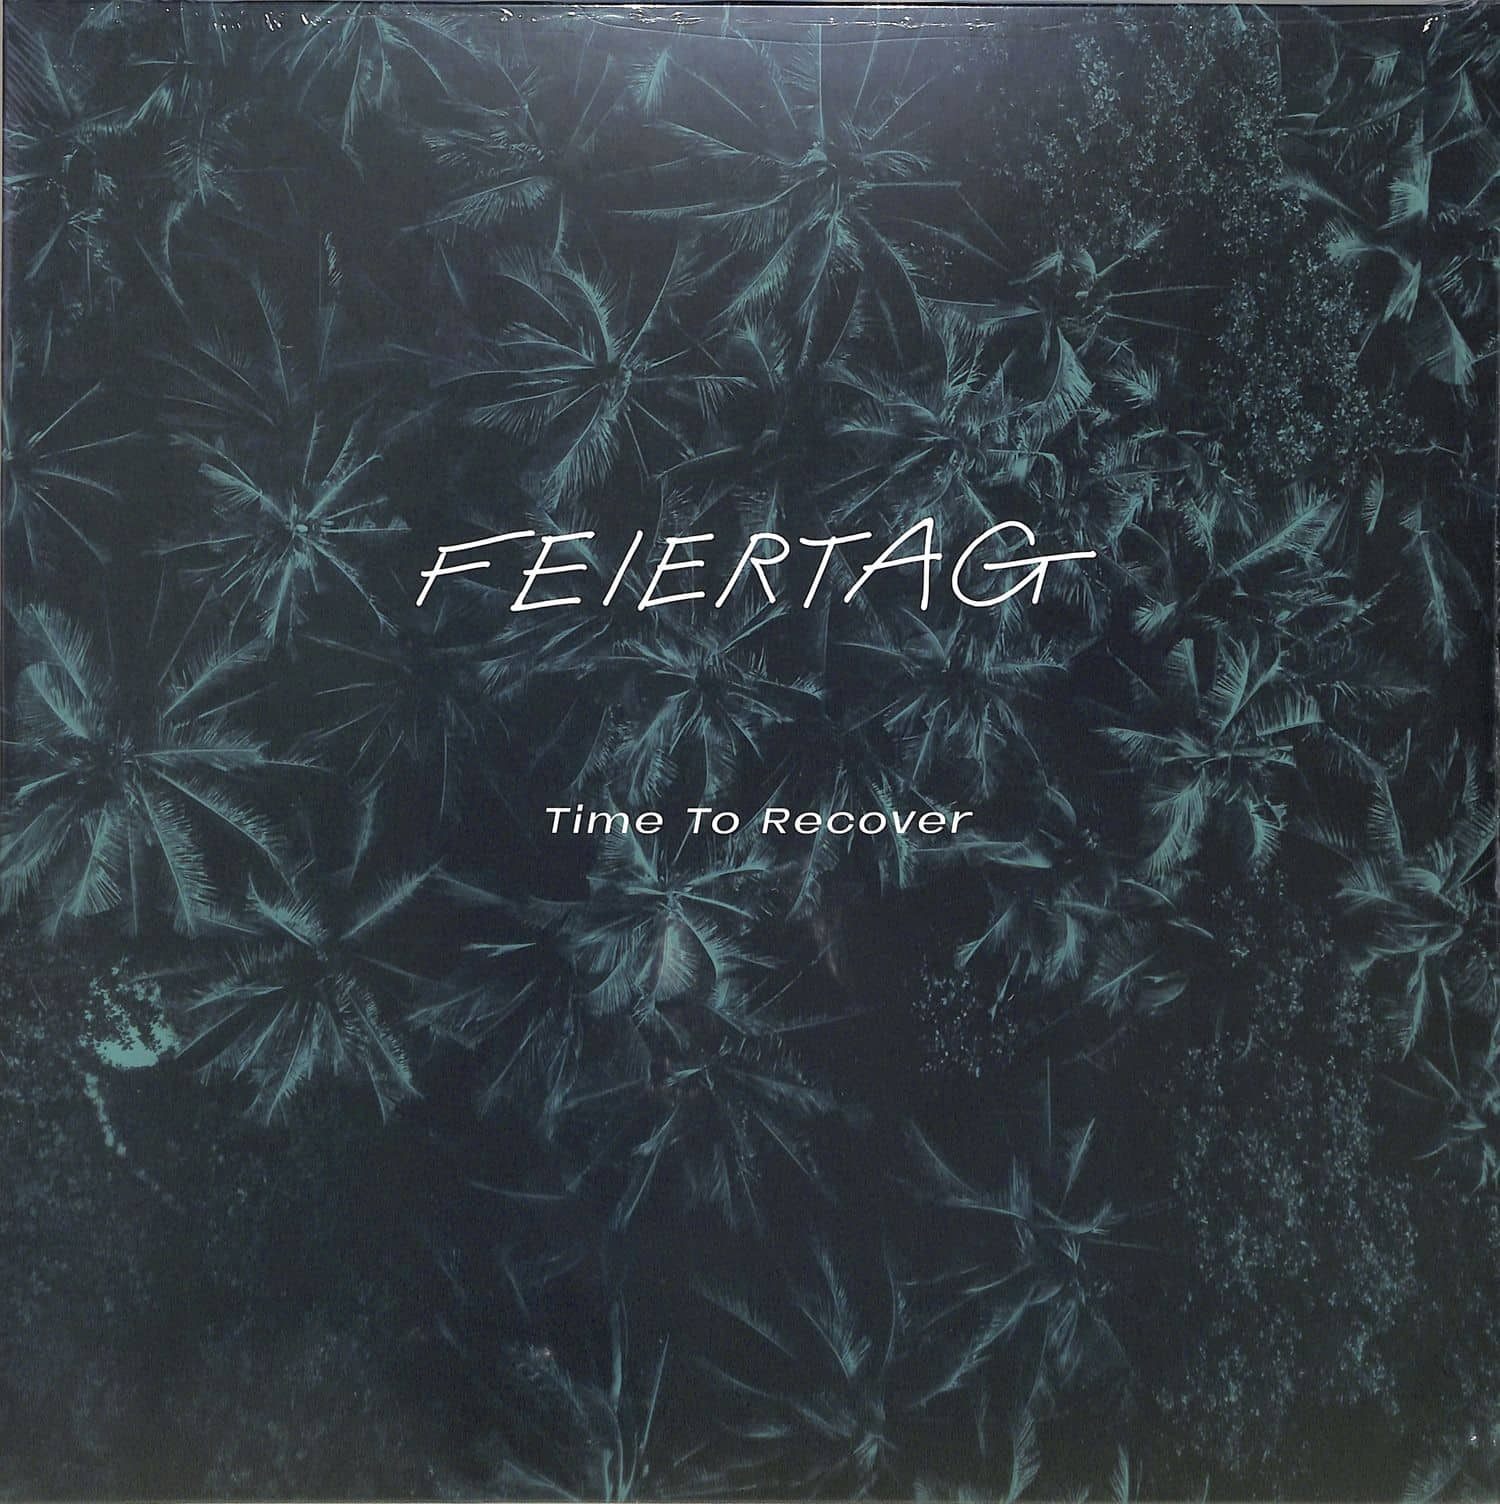 Feiertag - TIME TO RECOVER